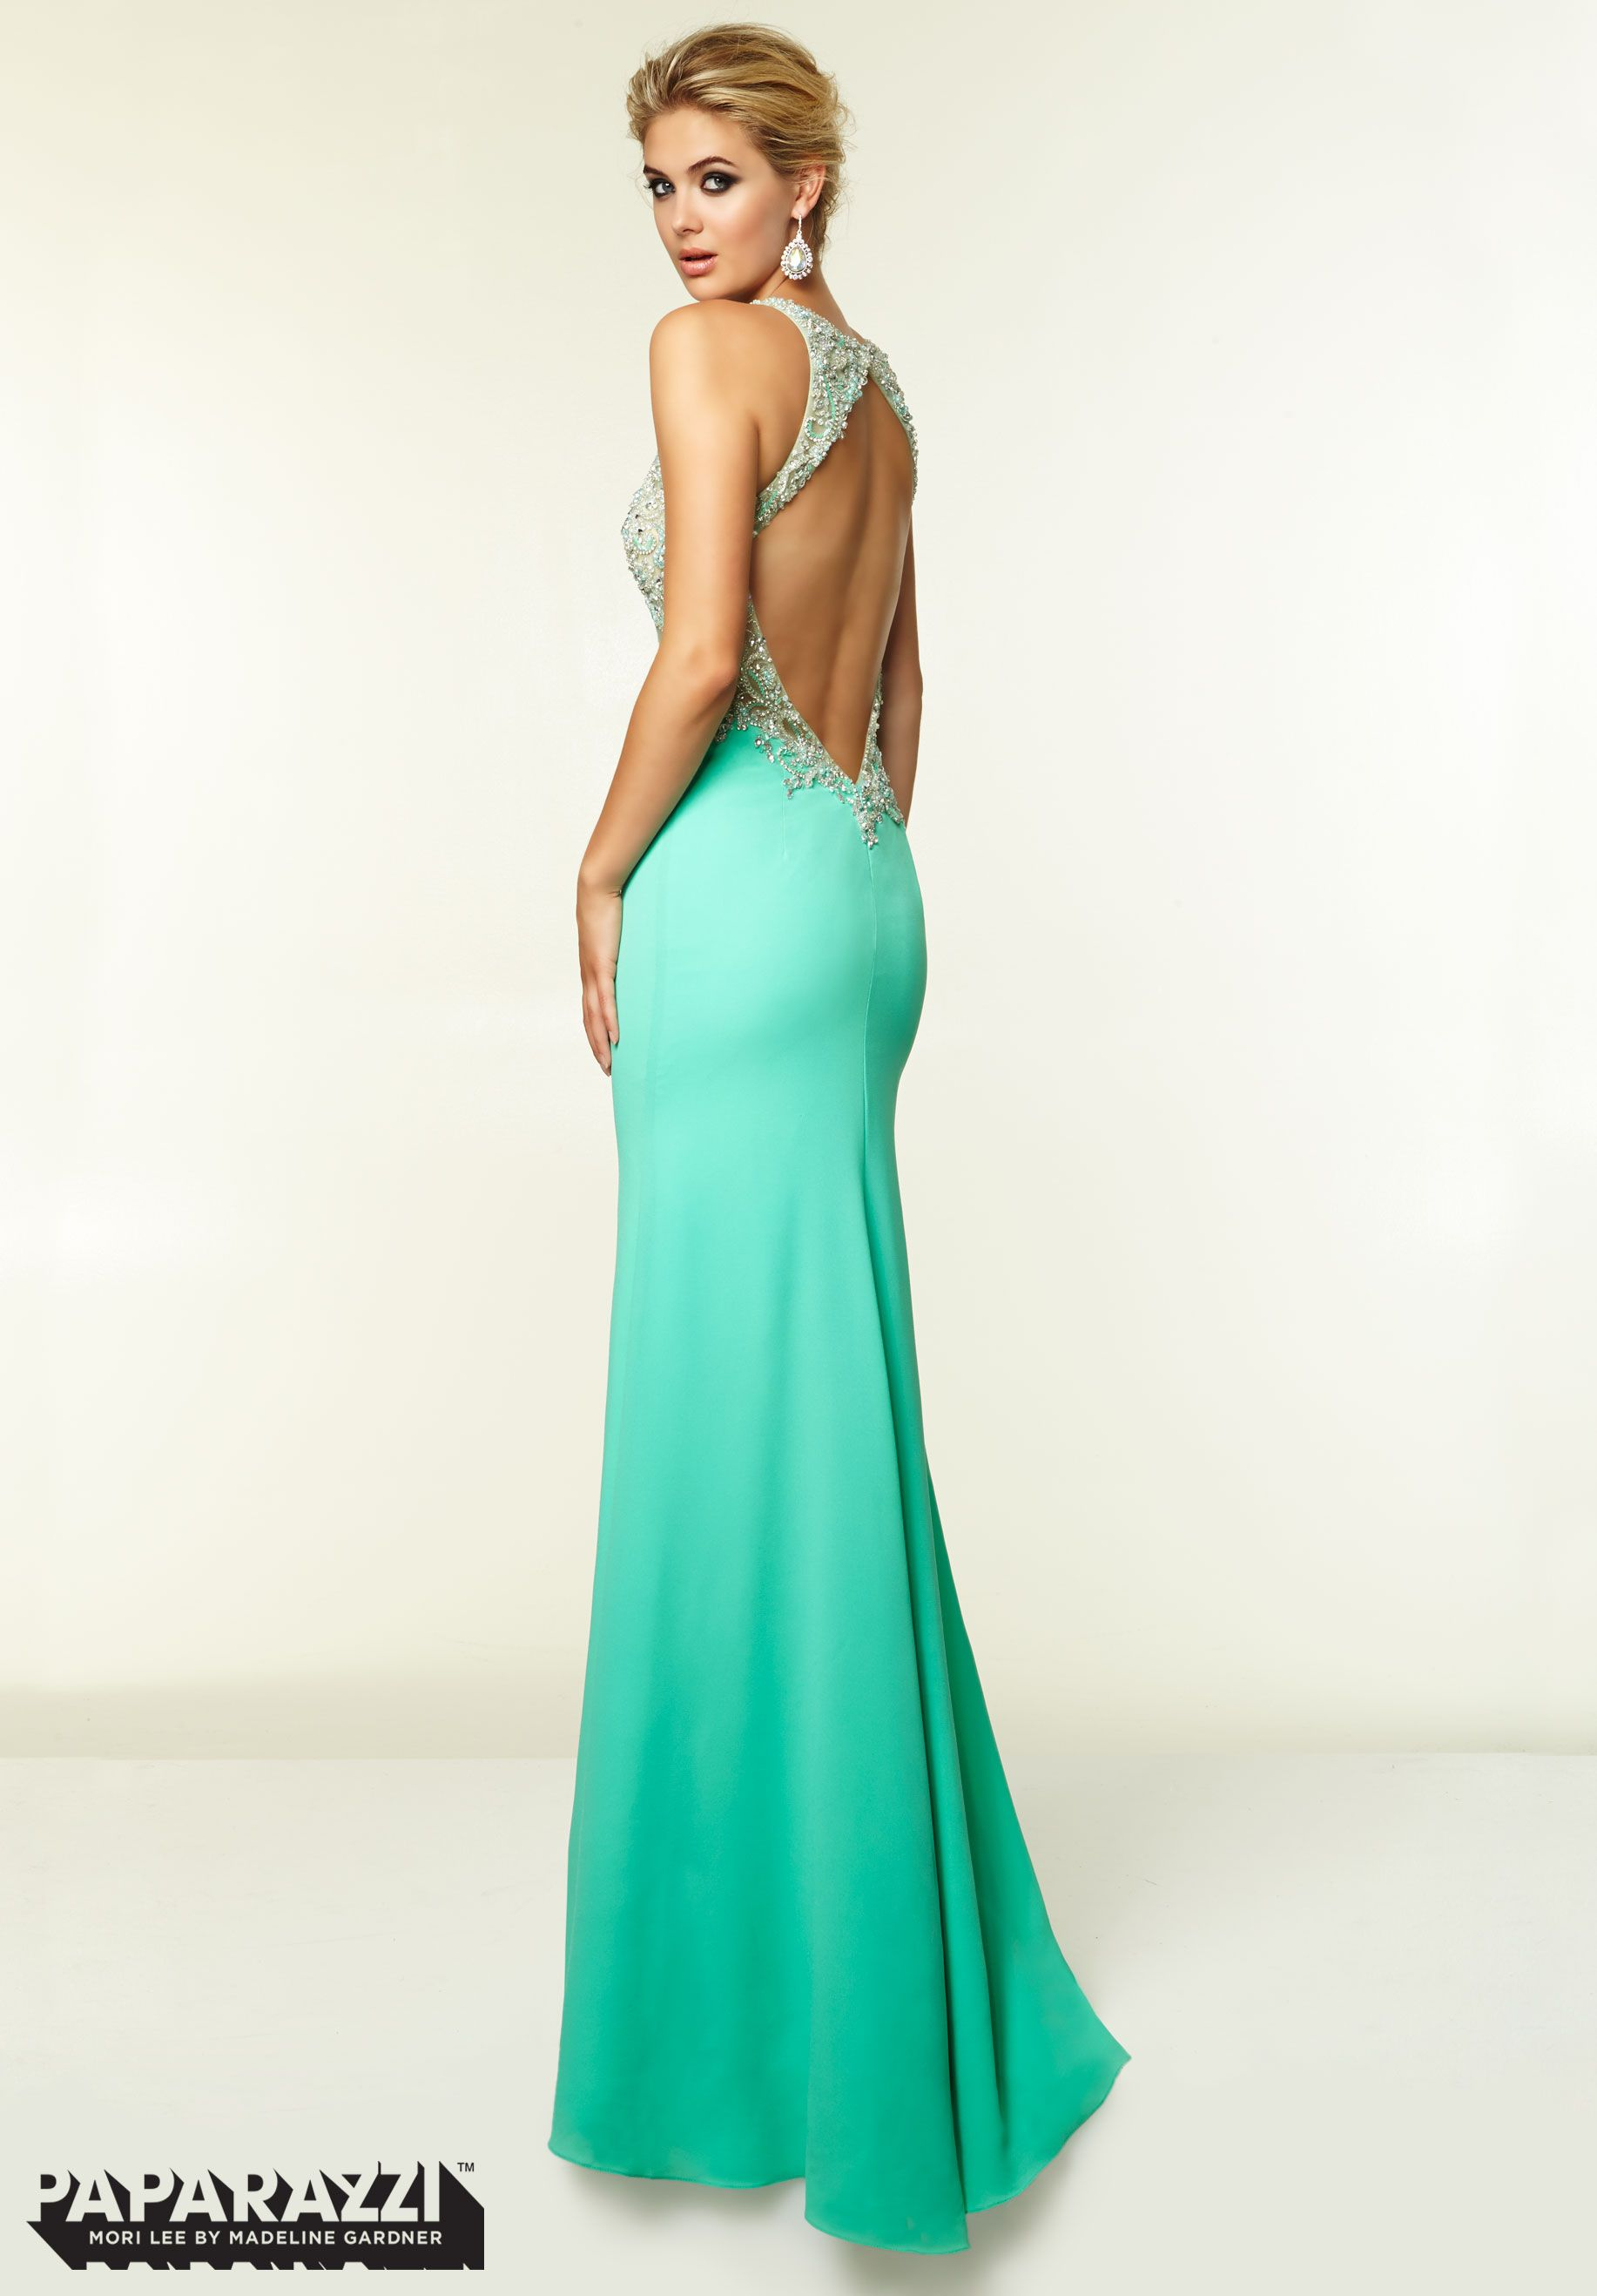 Amazing Prom Dress Stores Cincinnati Pictures Inspiration Wedding